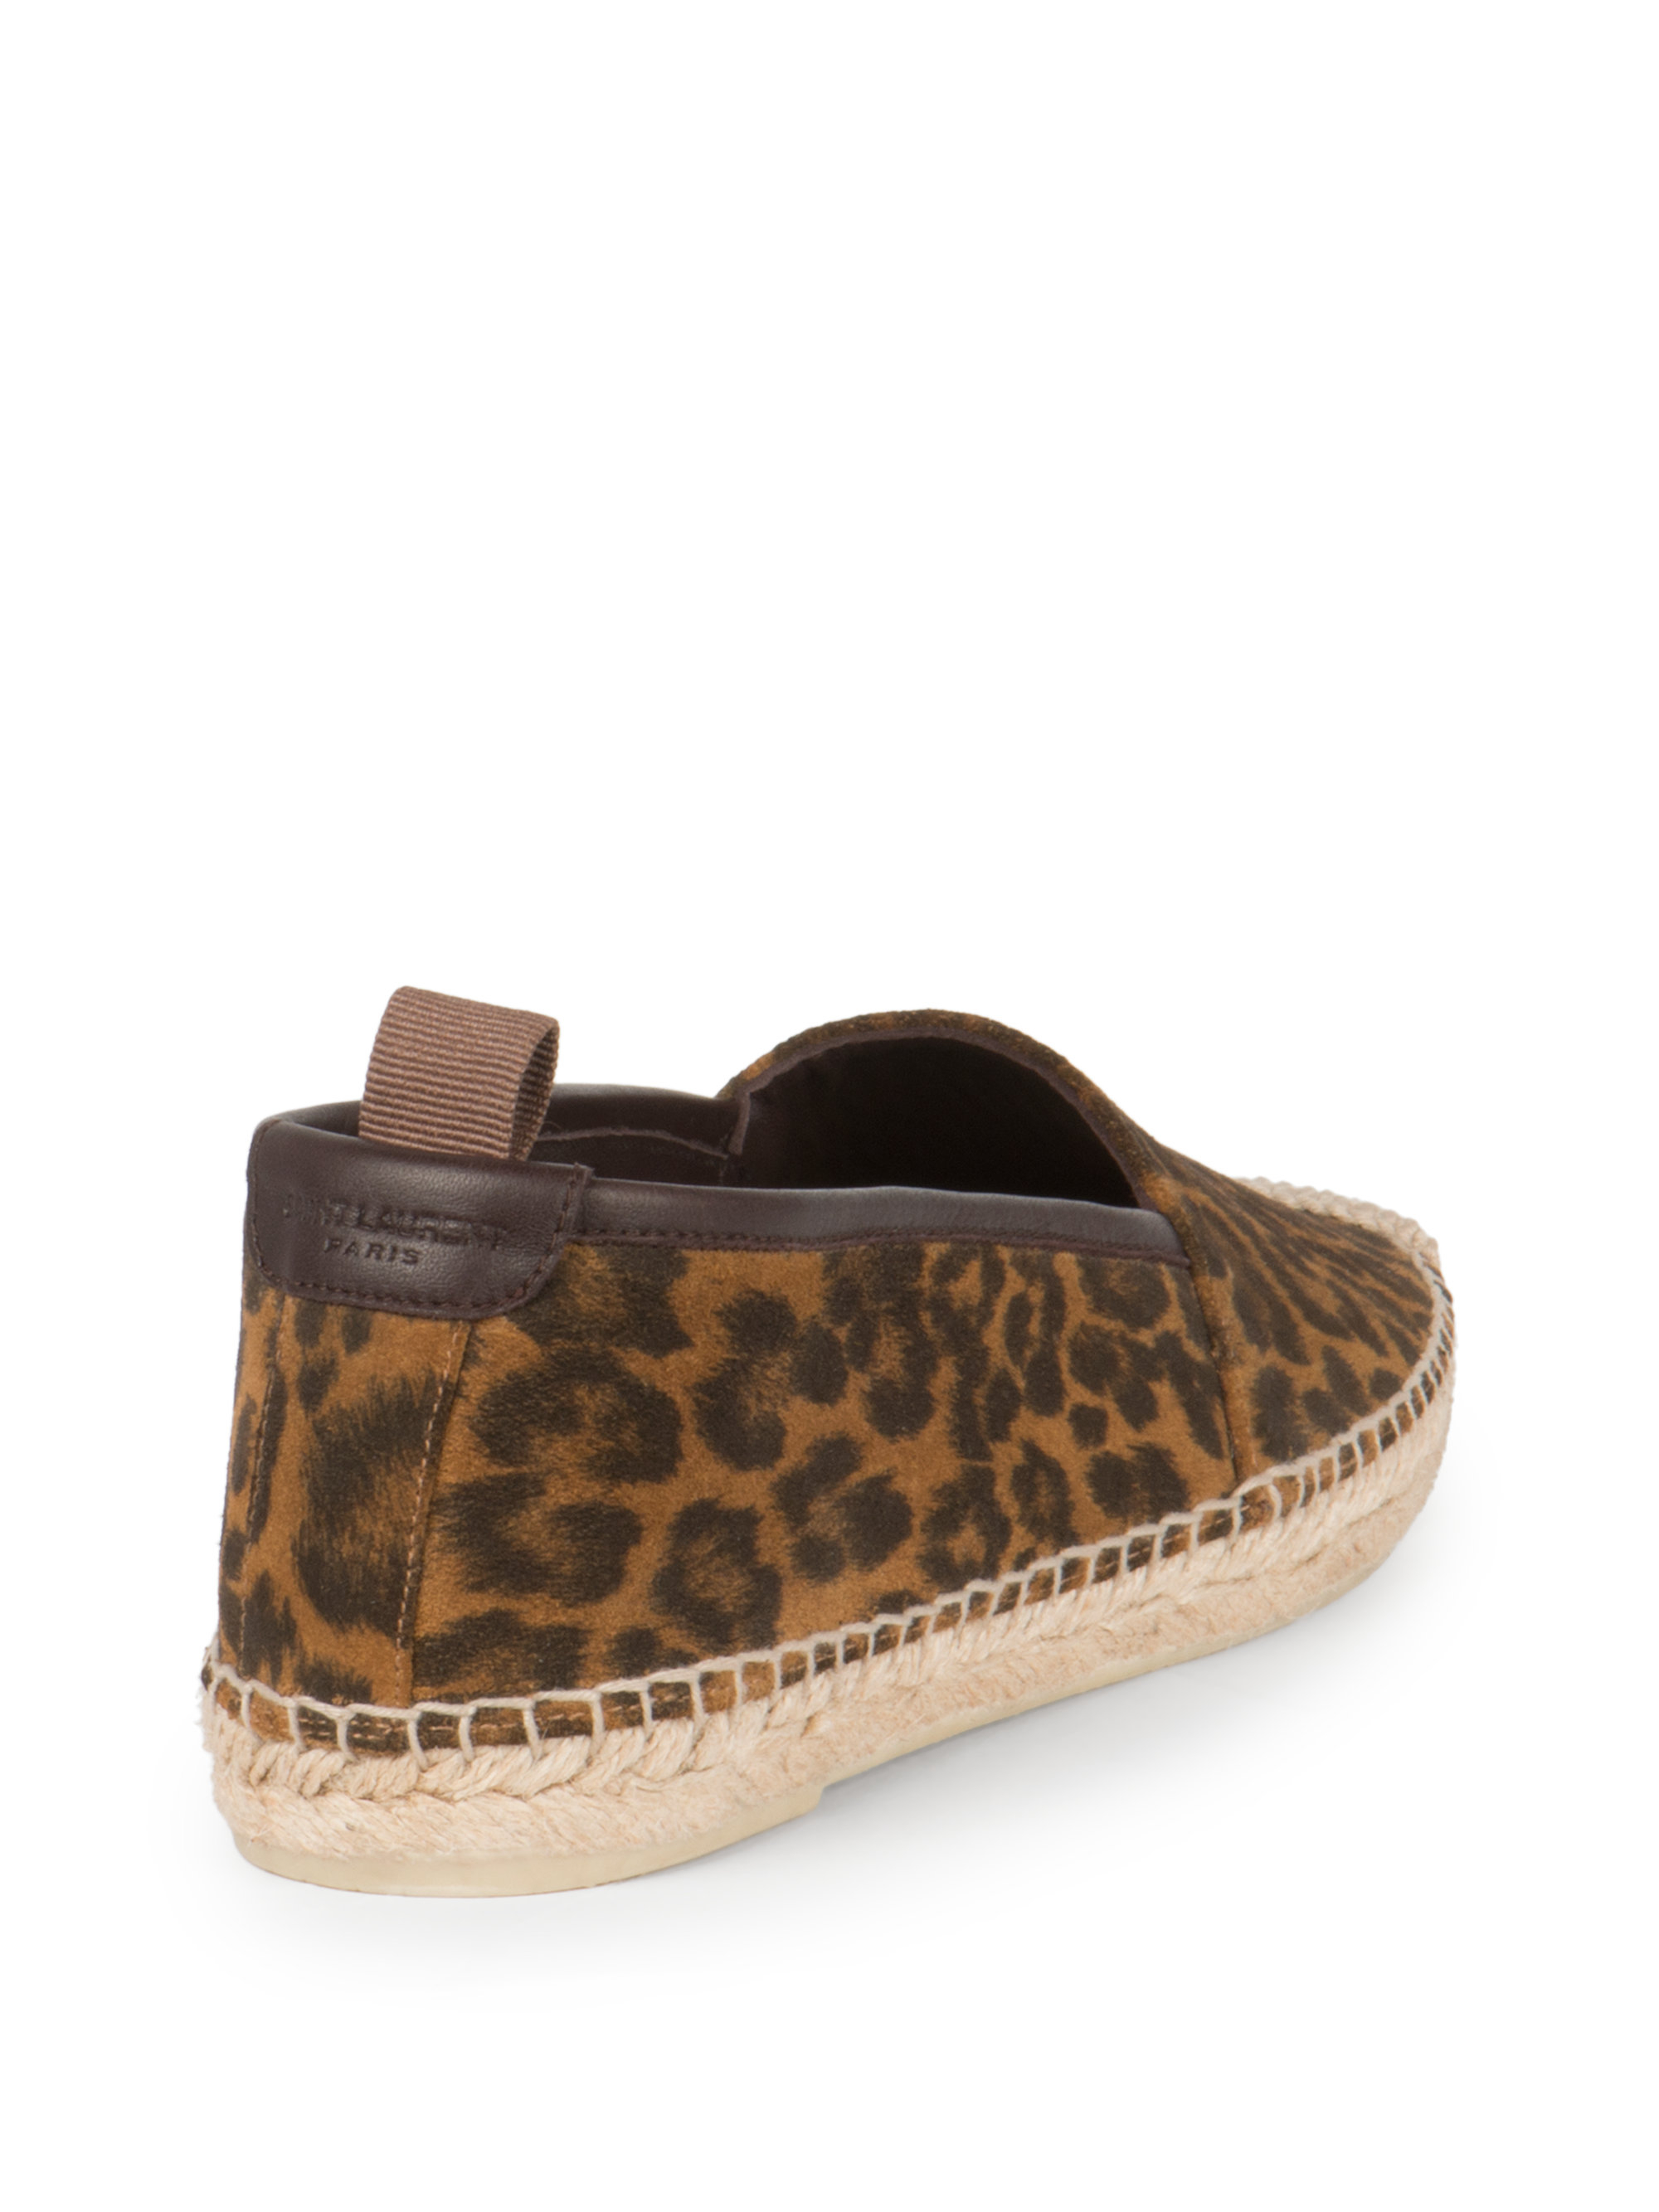 limited edition cheap price sale footlocker pictures Saint Laurent Suede Patterned Espadrilles low price fee shipping cheap price newest for sale eo743gRJL